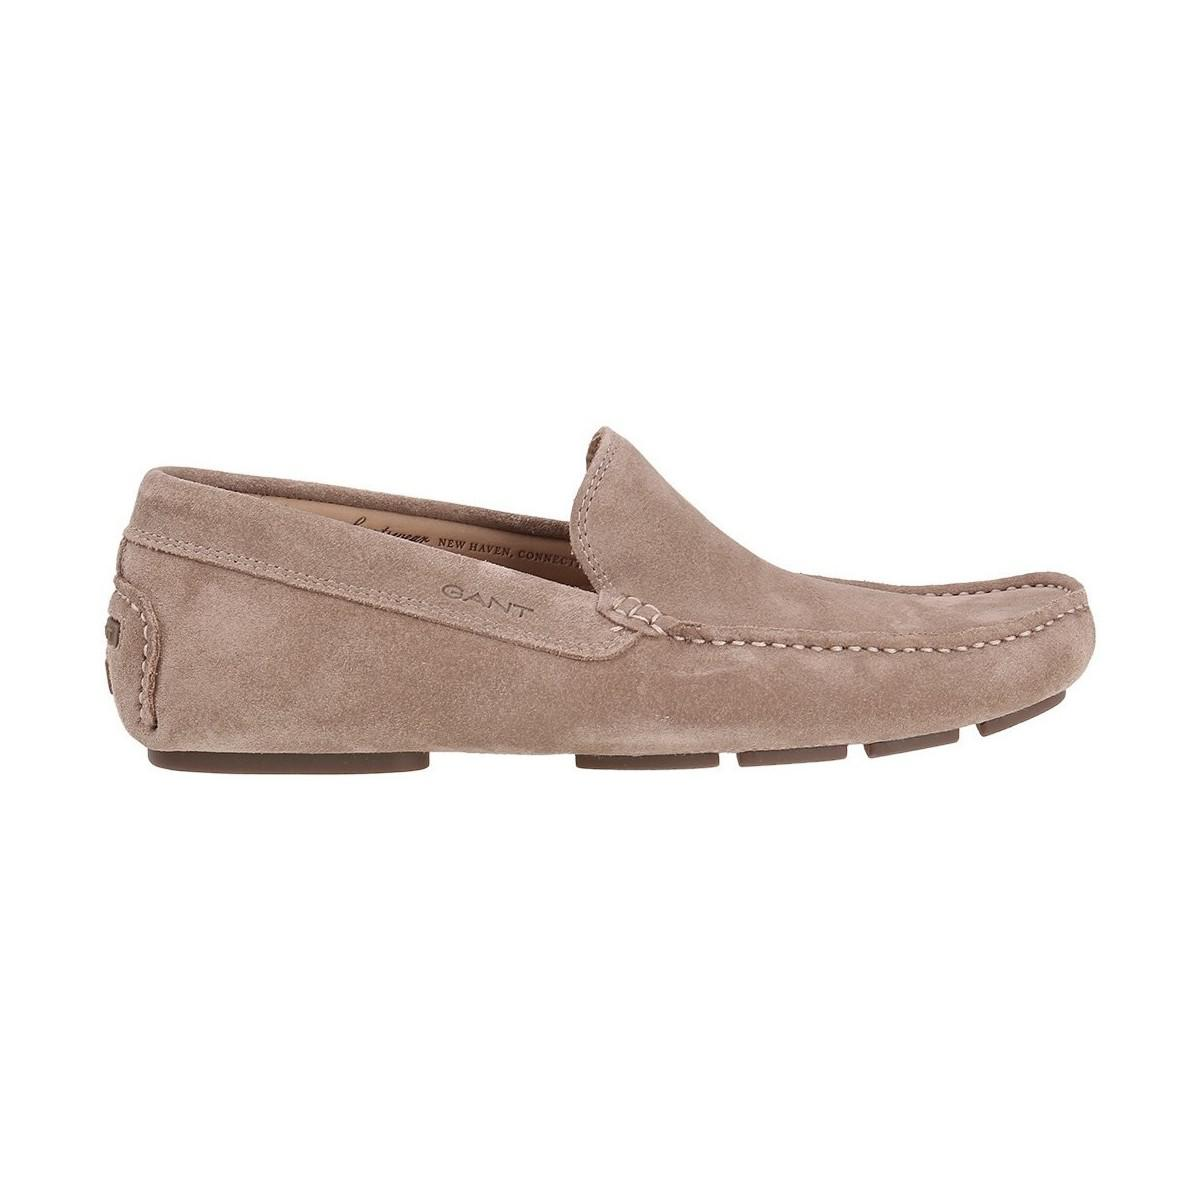 9ccb906ee5 GANT Austin Men's Loafers / Casual Shoes In Beige in Natural for Men ...